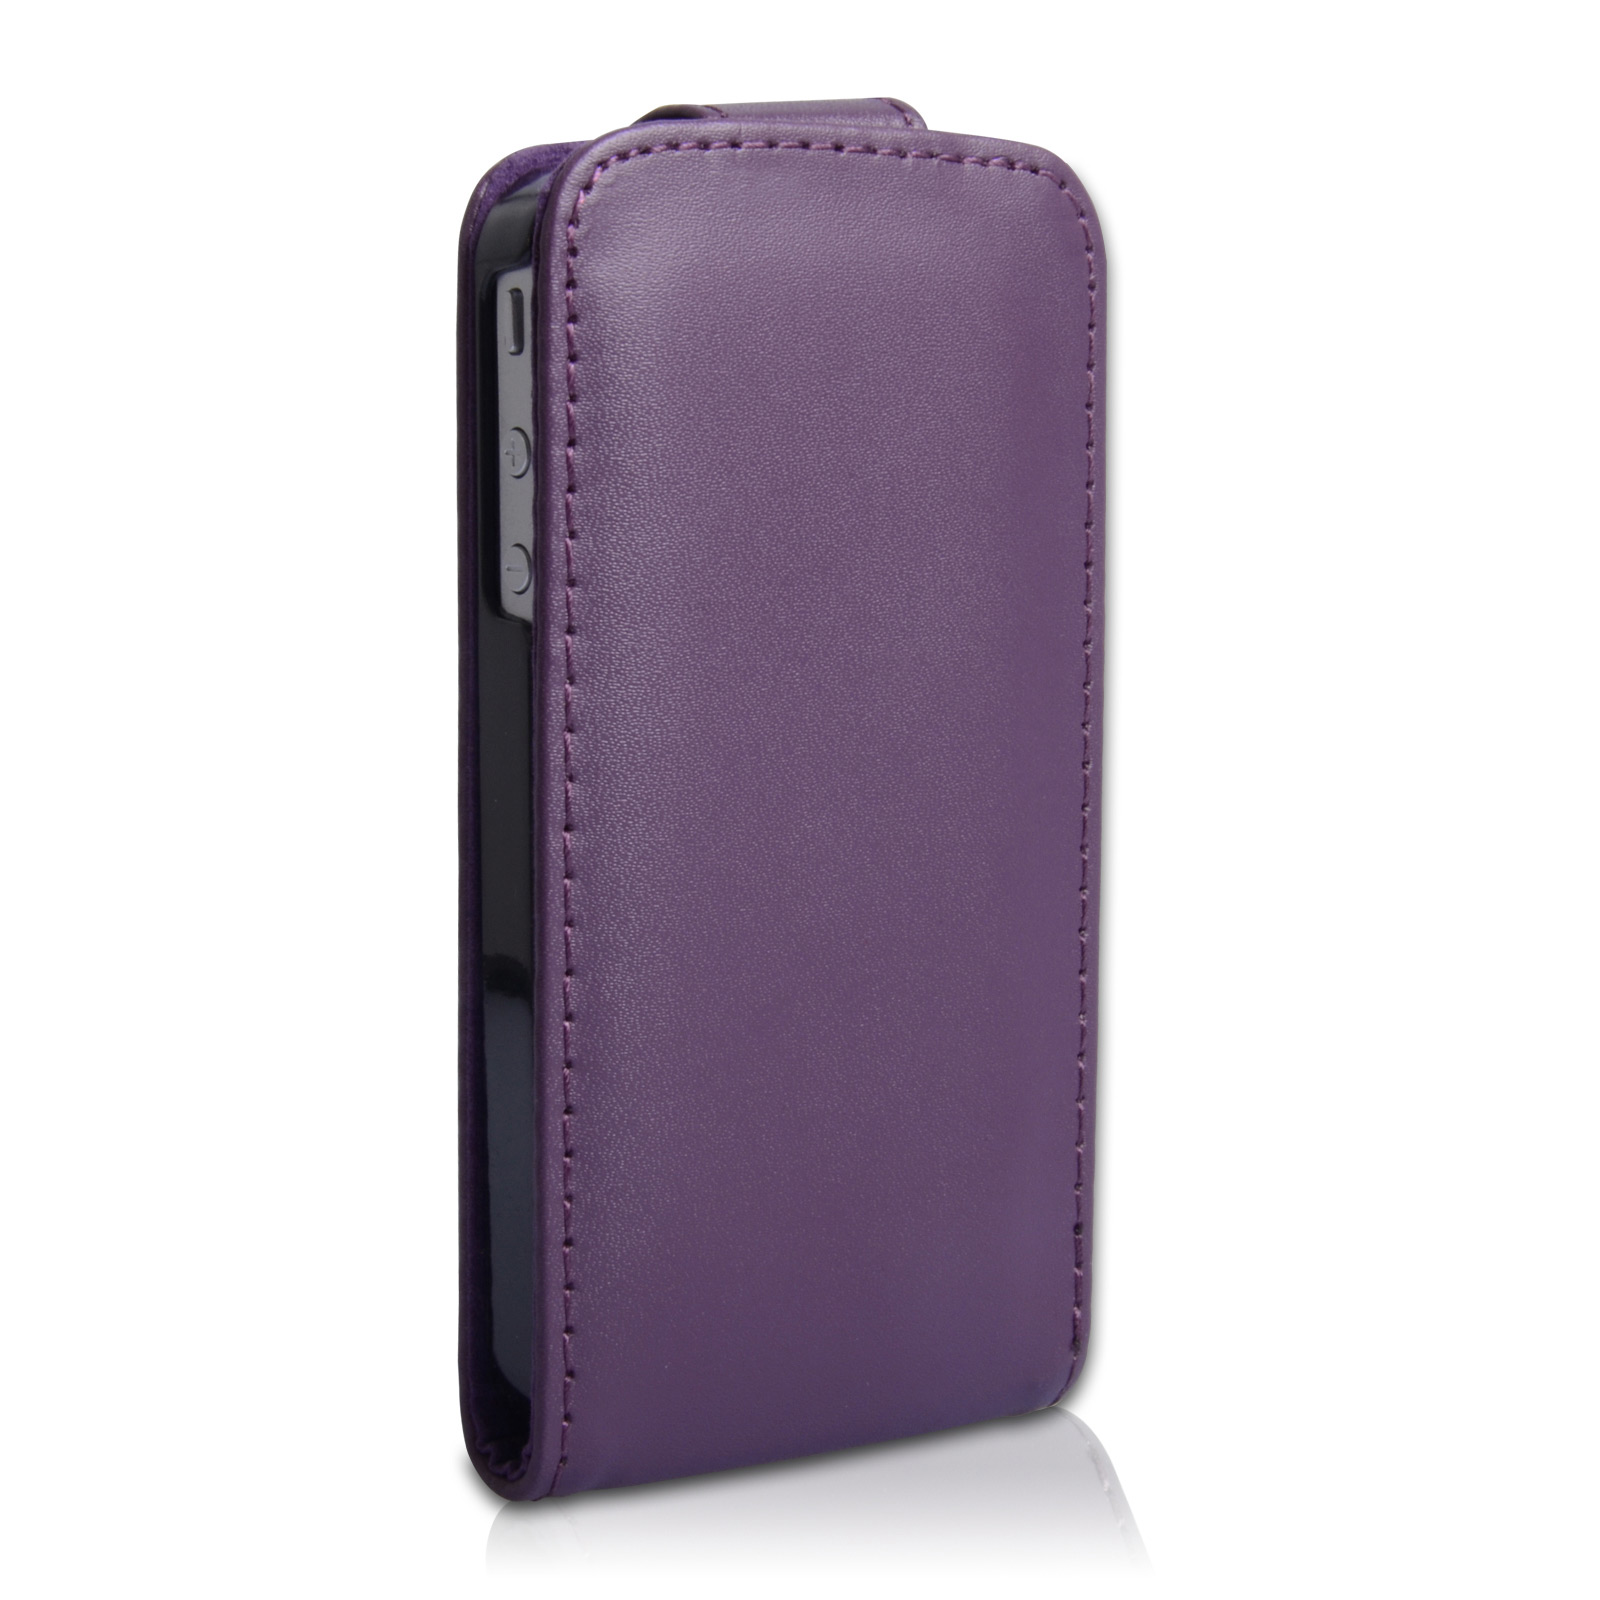 YouSave Accessories iPhone 4 / 4S Leather Effect Flip Case - Purple